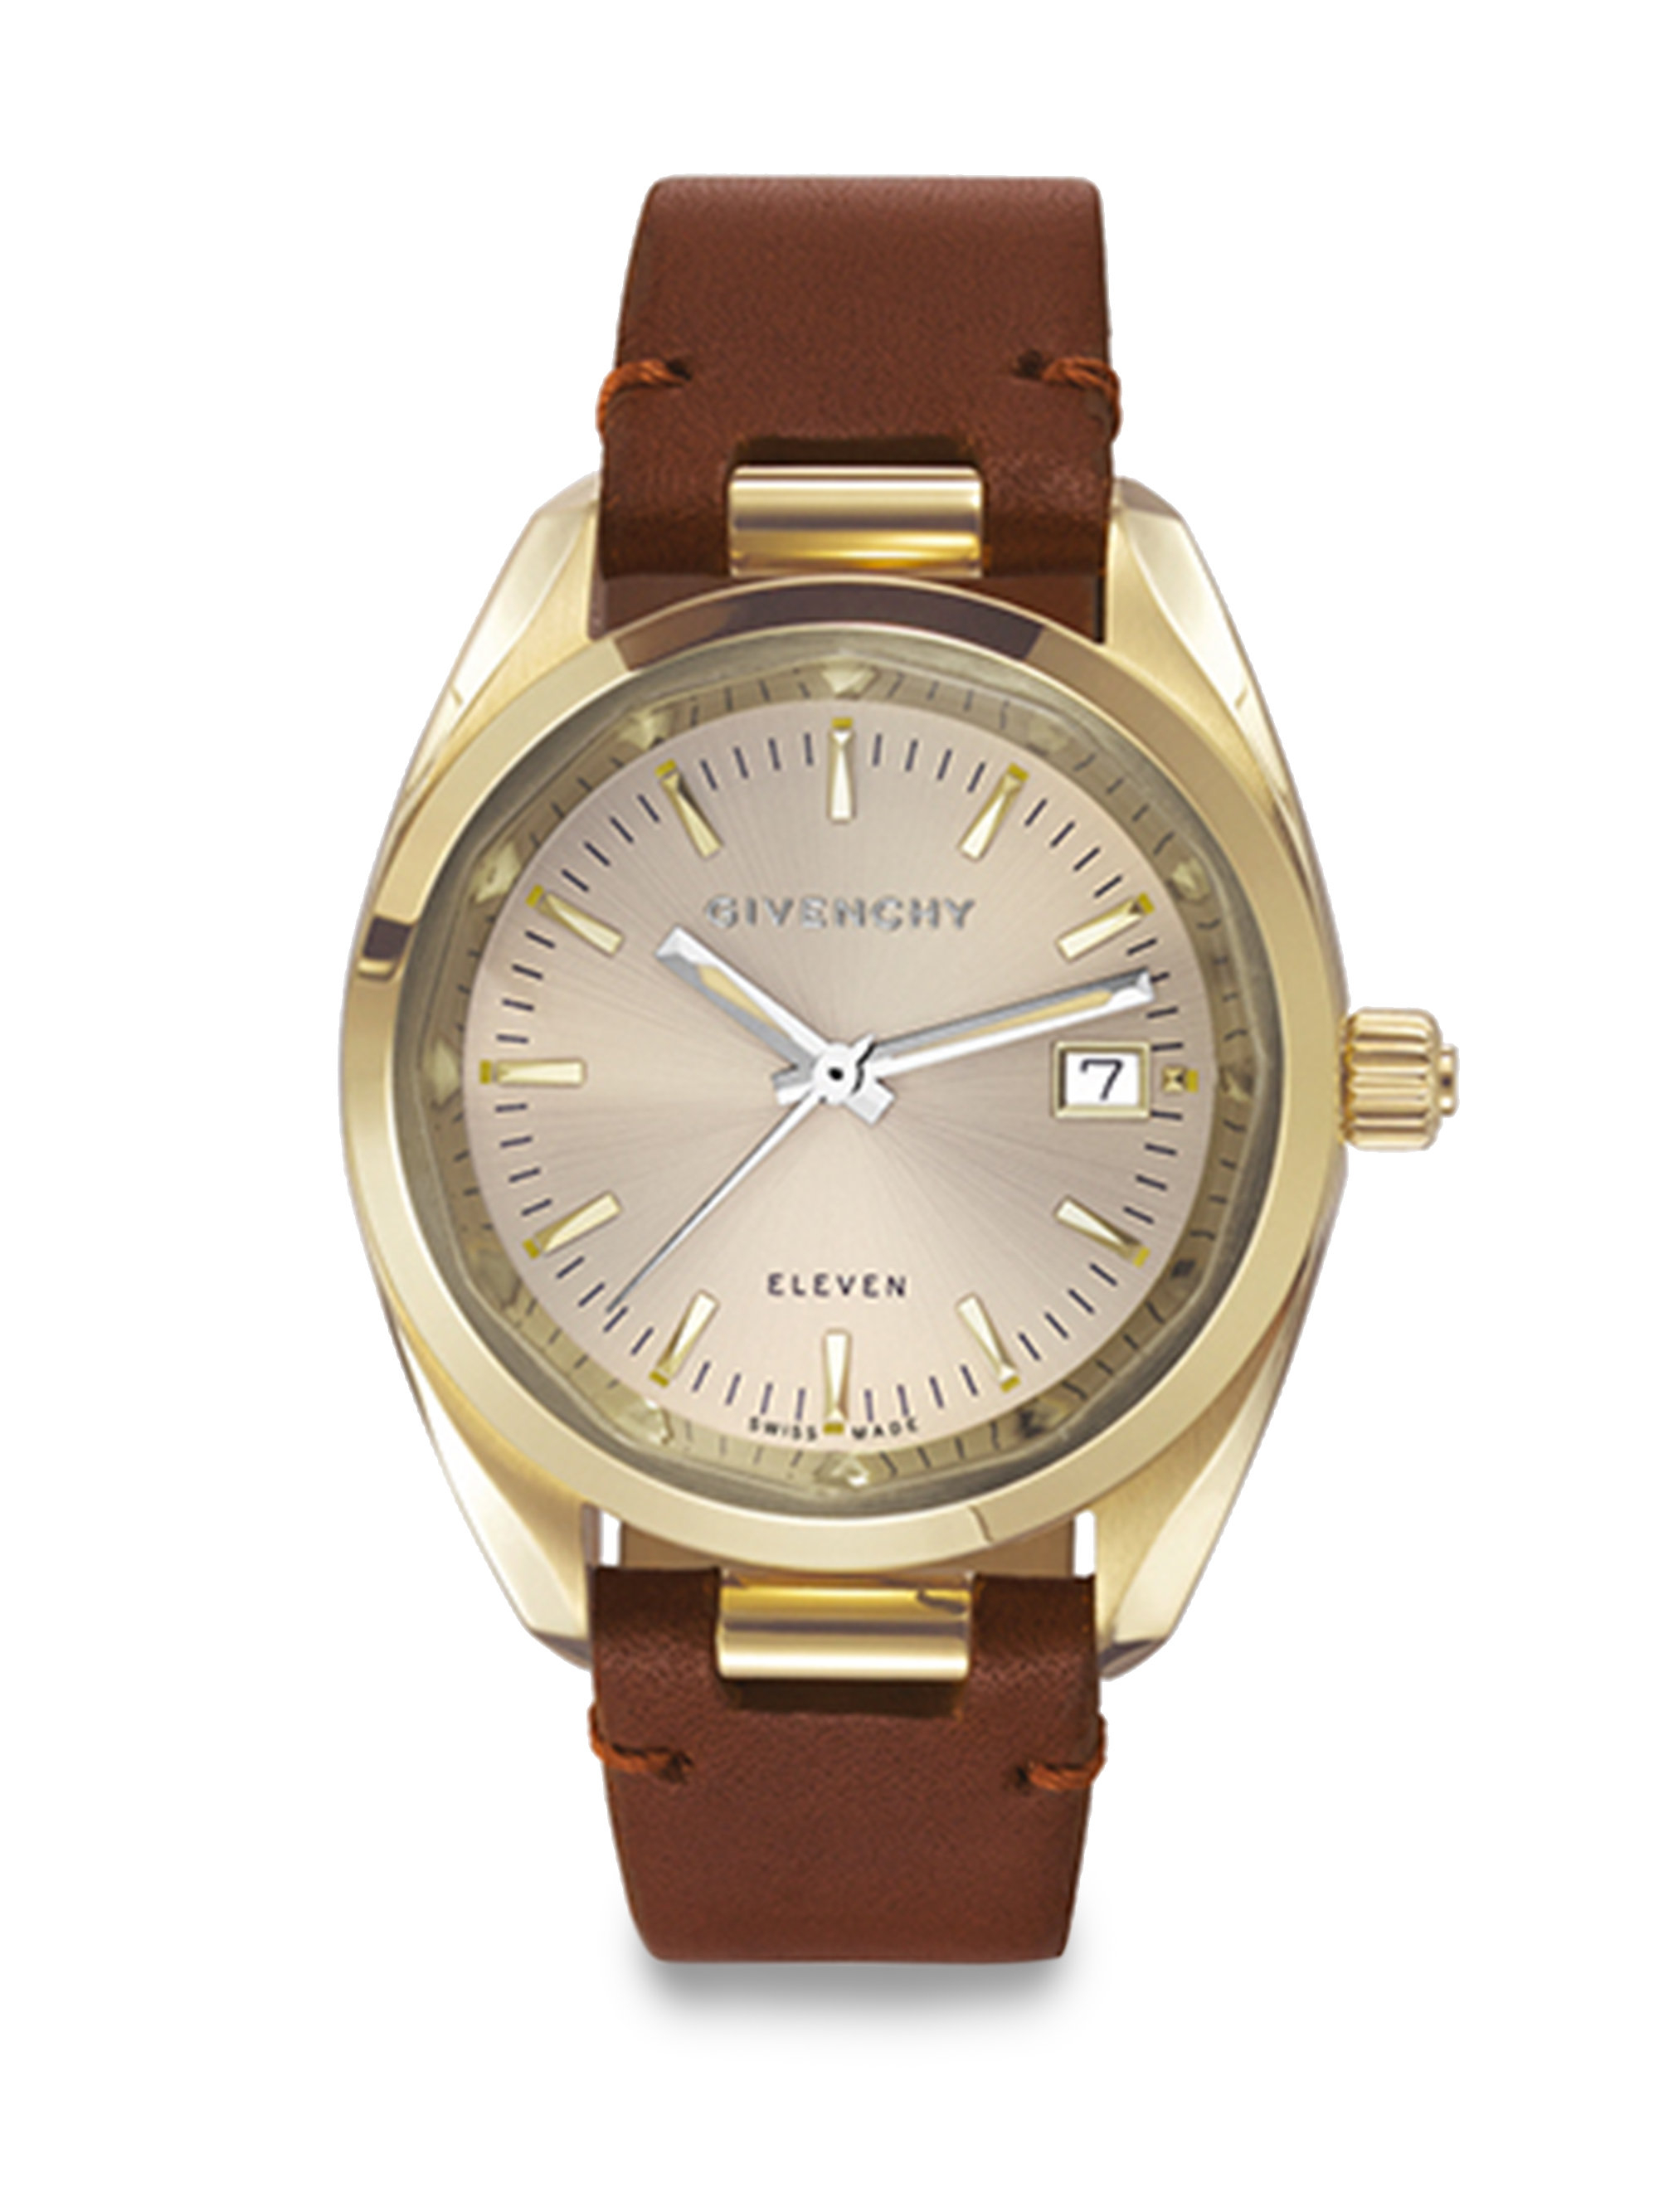 Lyst givenchy eleven goldtone pvd stainless steel leather strap watch in brown for Givenchy watches